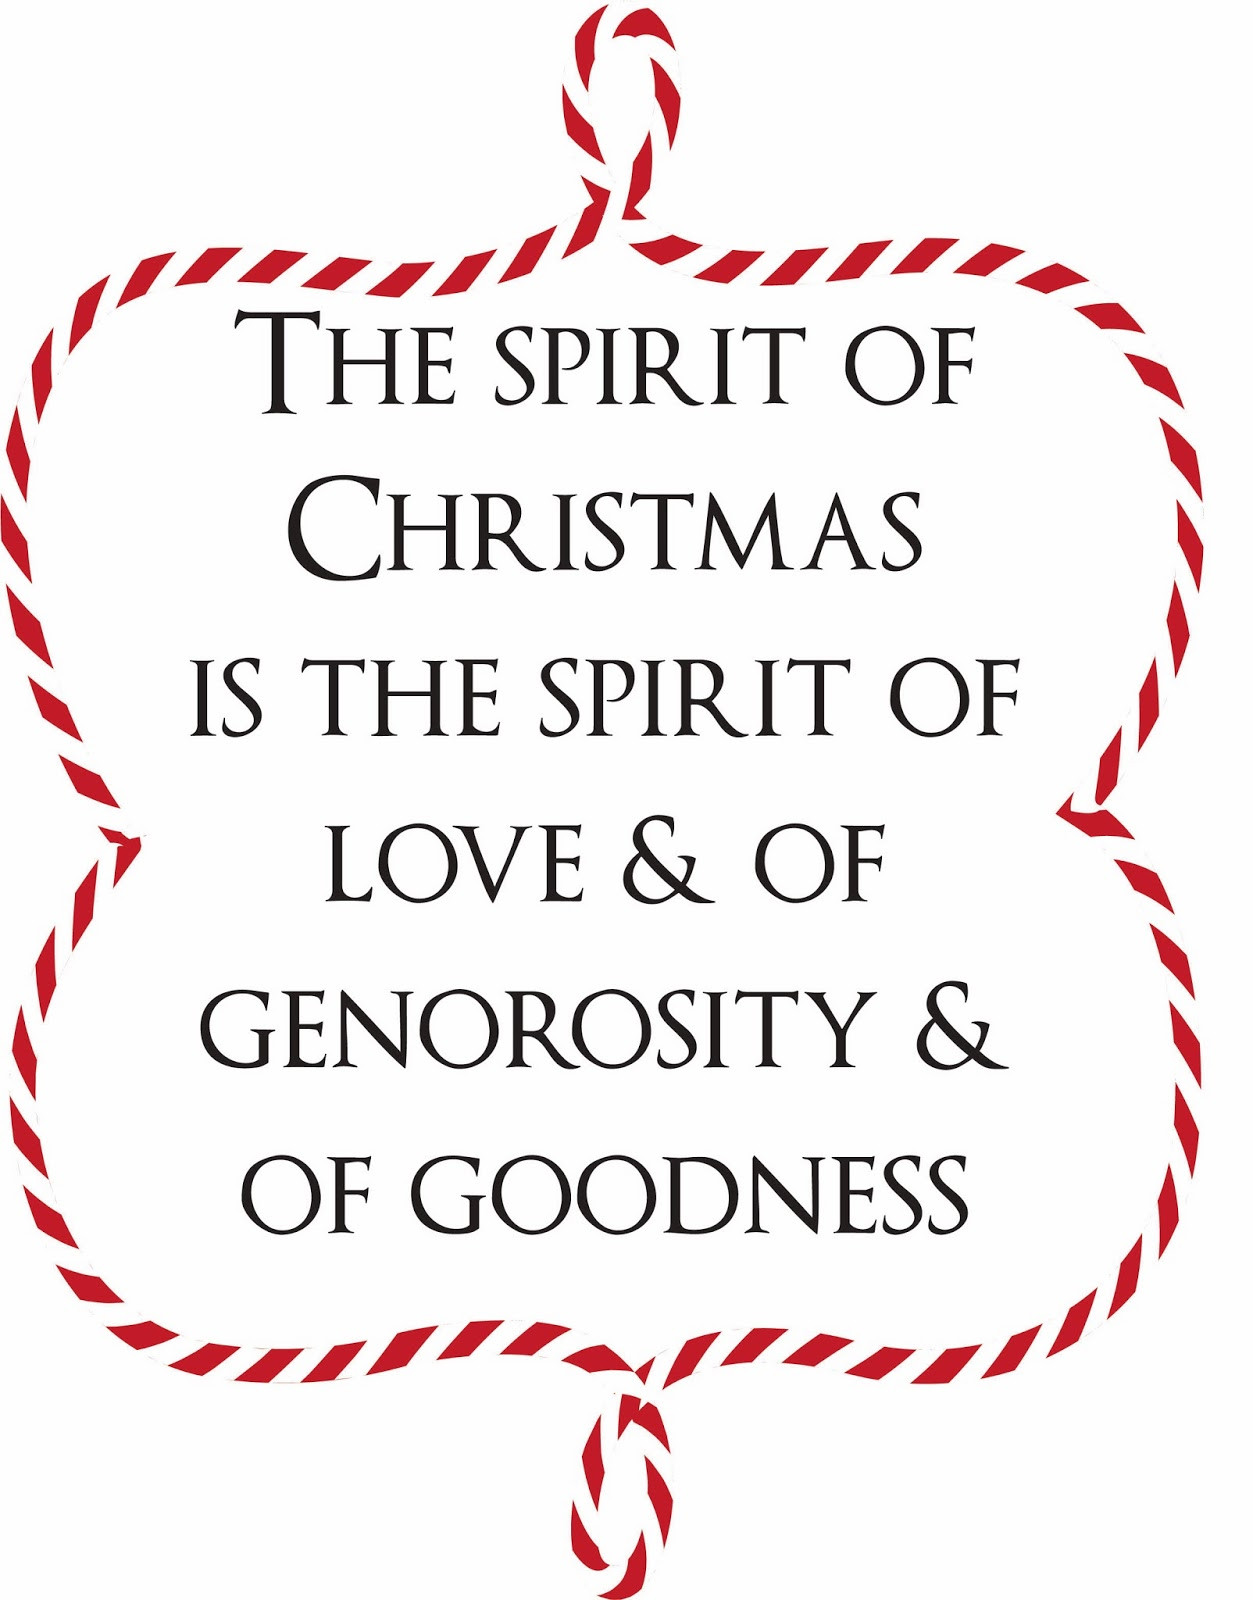 Spirit Of Christmas Quotes  Janey Mac CHRISTmas Quotes